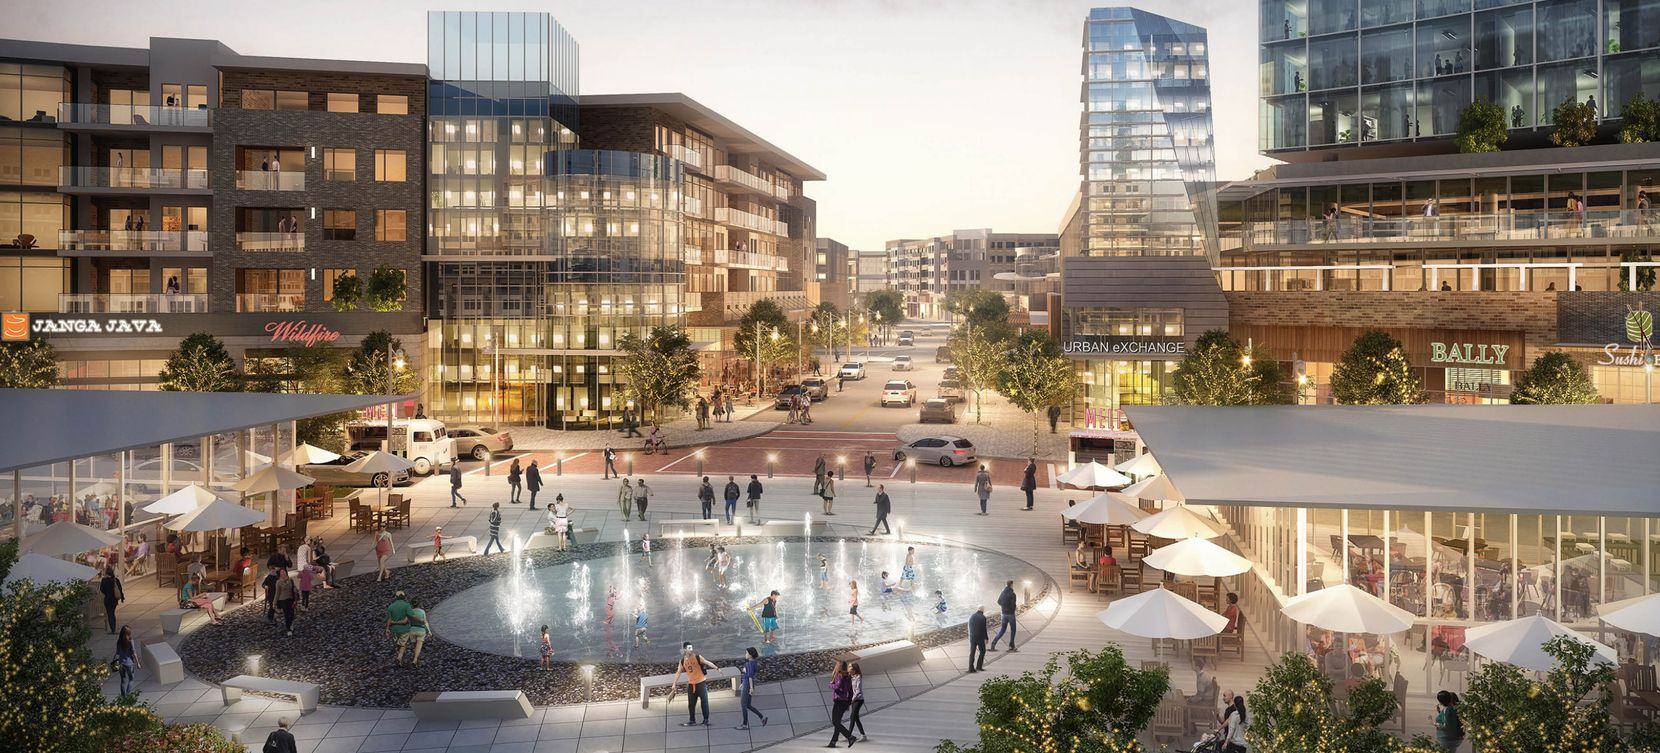 The corner of U.S. 75 is zoned for a $1 billion mixed use project.